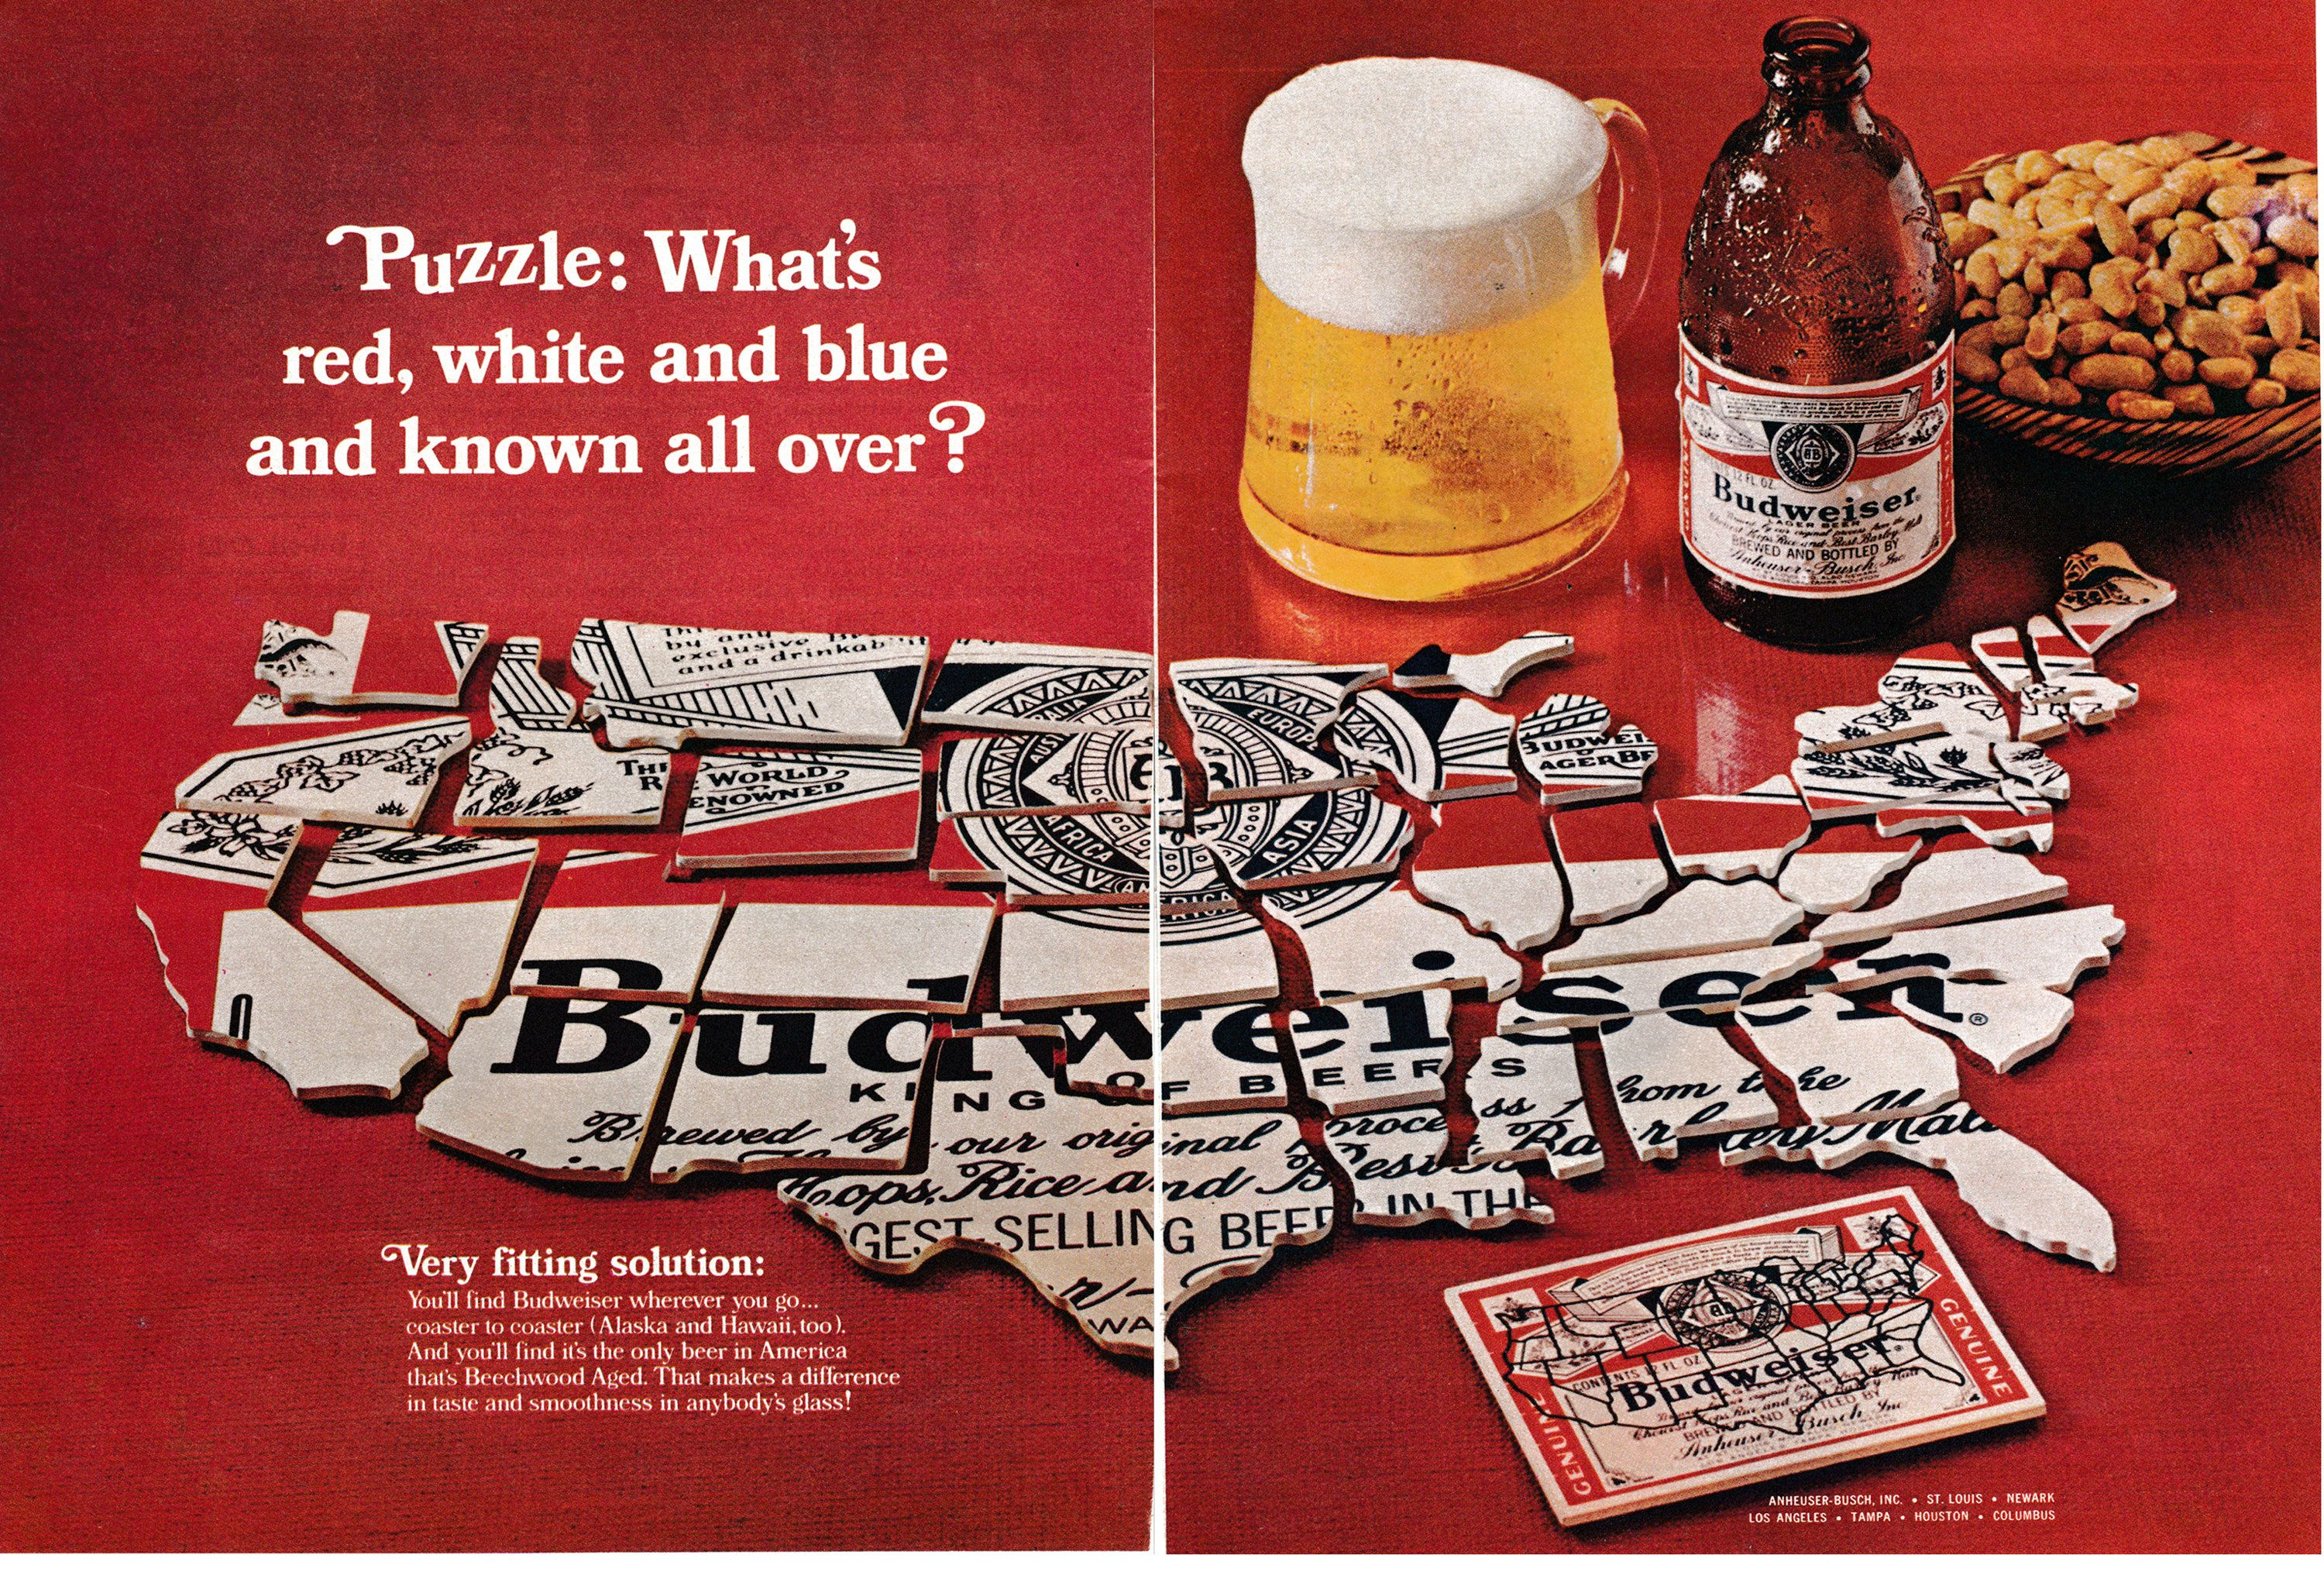 1965 Budweiser Beer Bud Logo Puzzle Of Usa Original 2 Page Etsy Budweiser Beer Budweiser Beer Advertisement